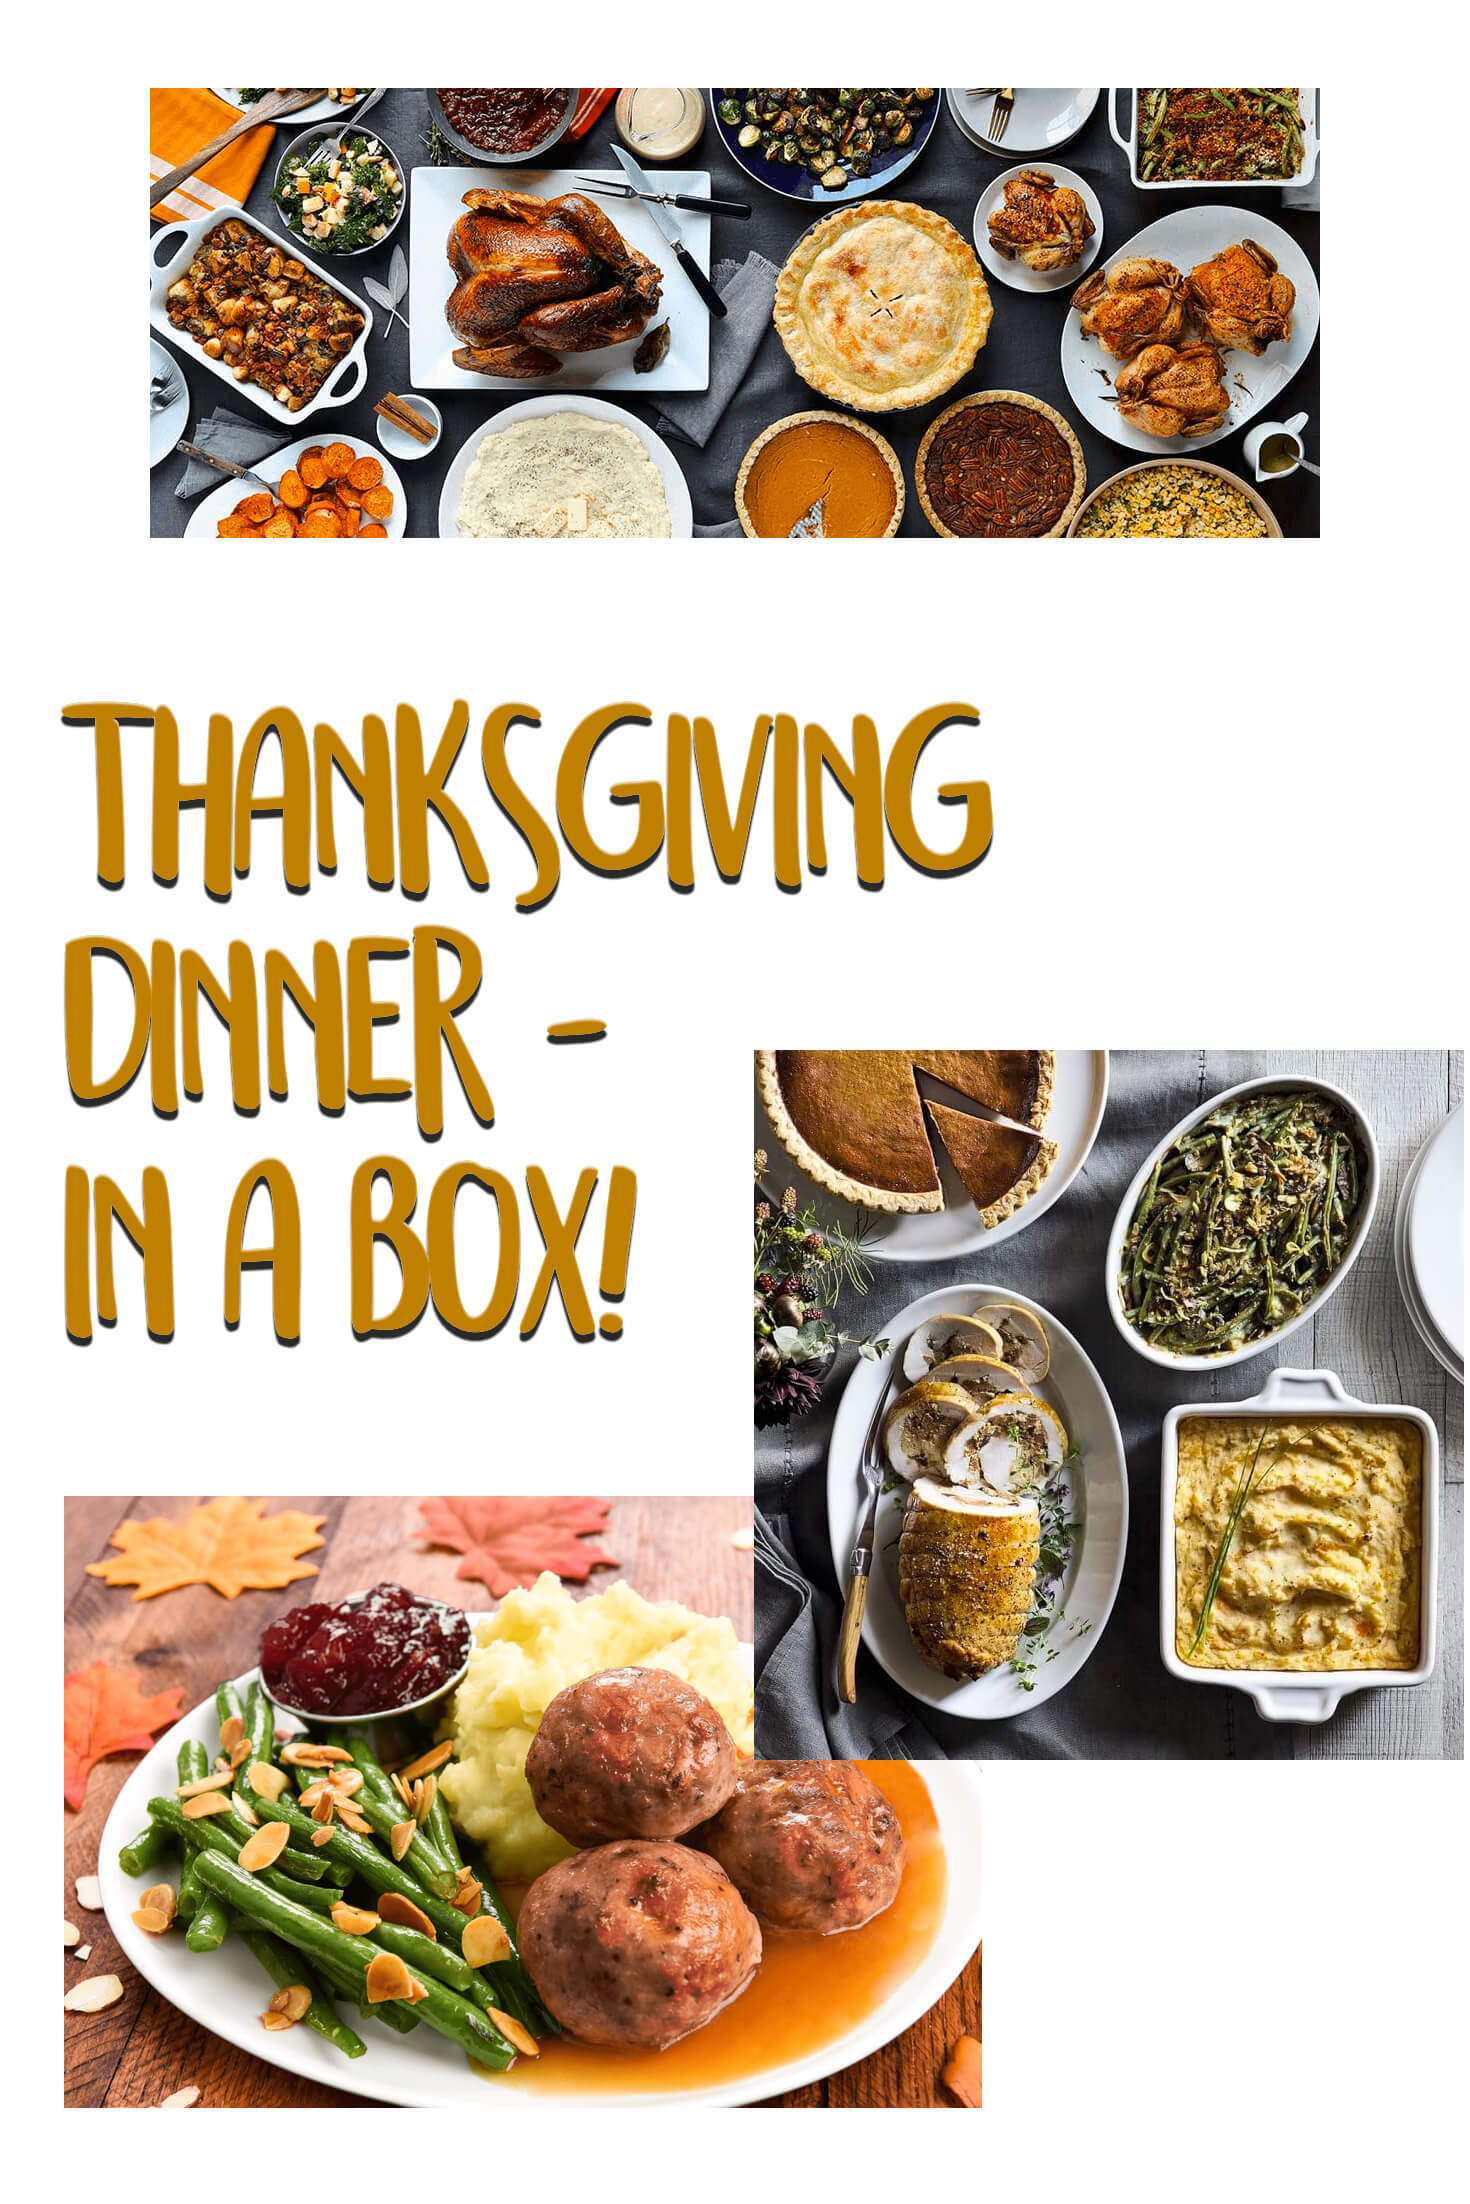 Thanksgiving Dinner In A Box!